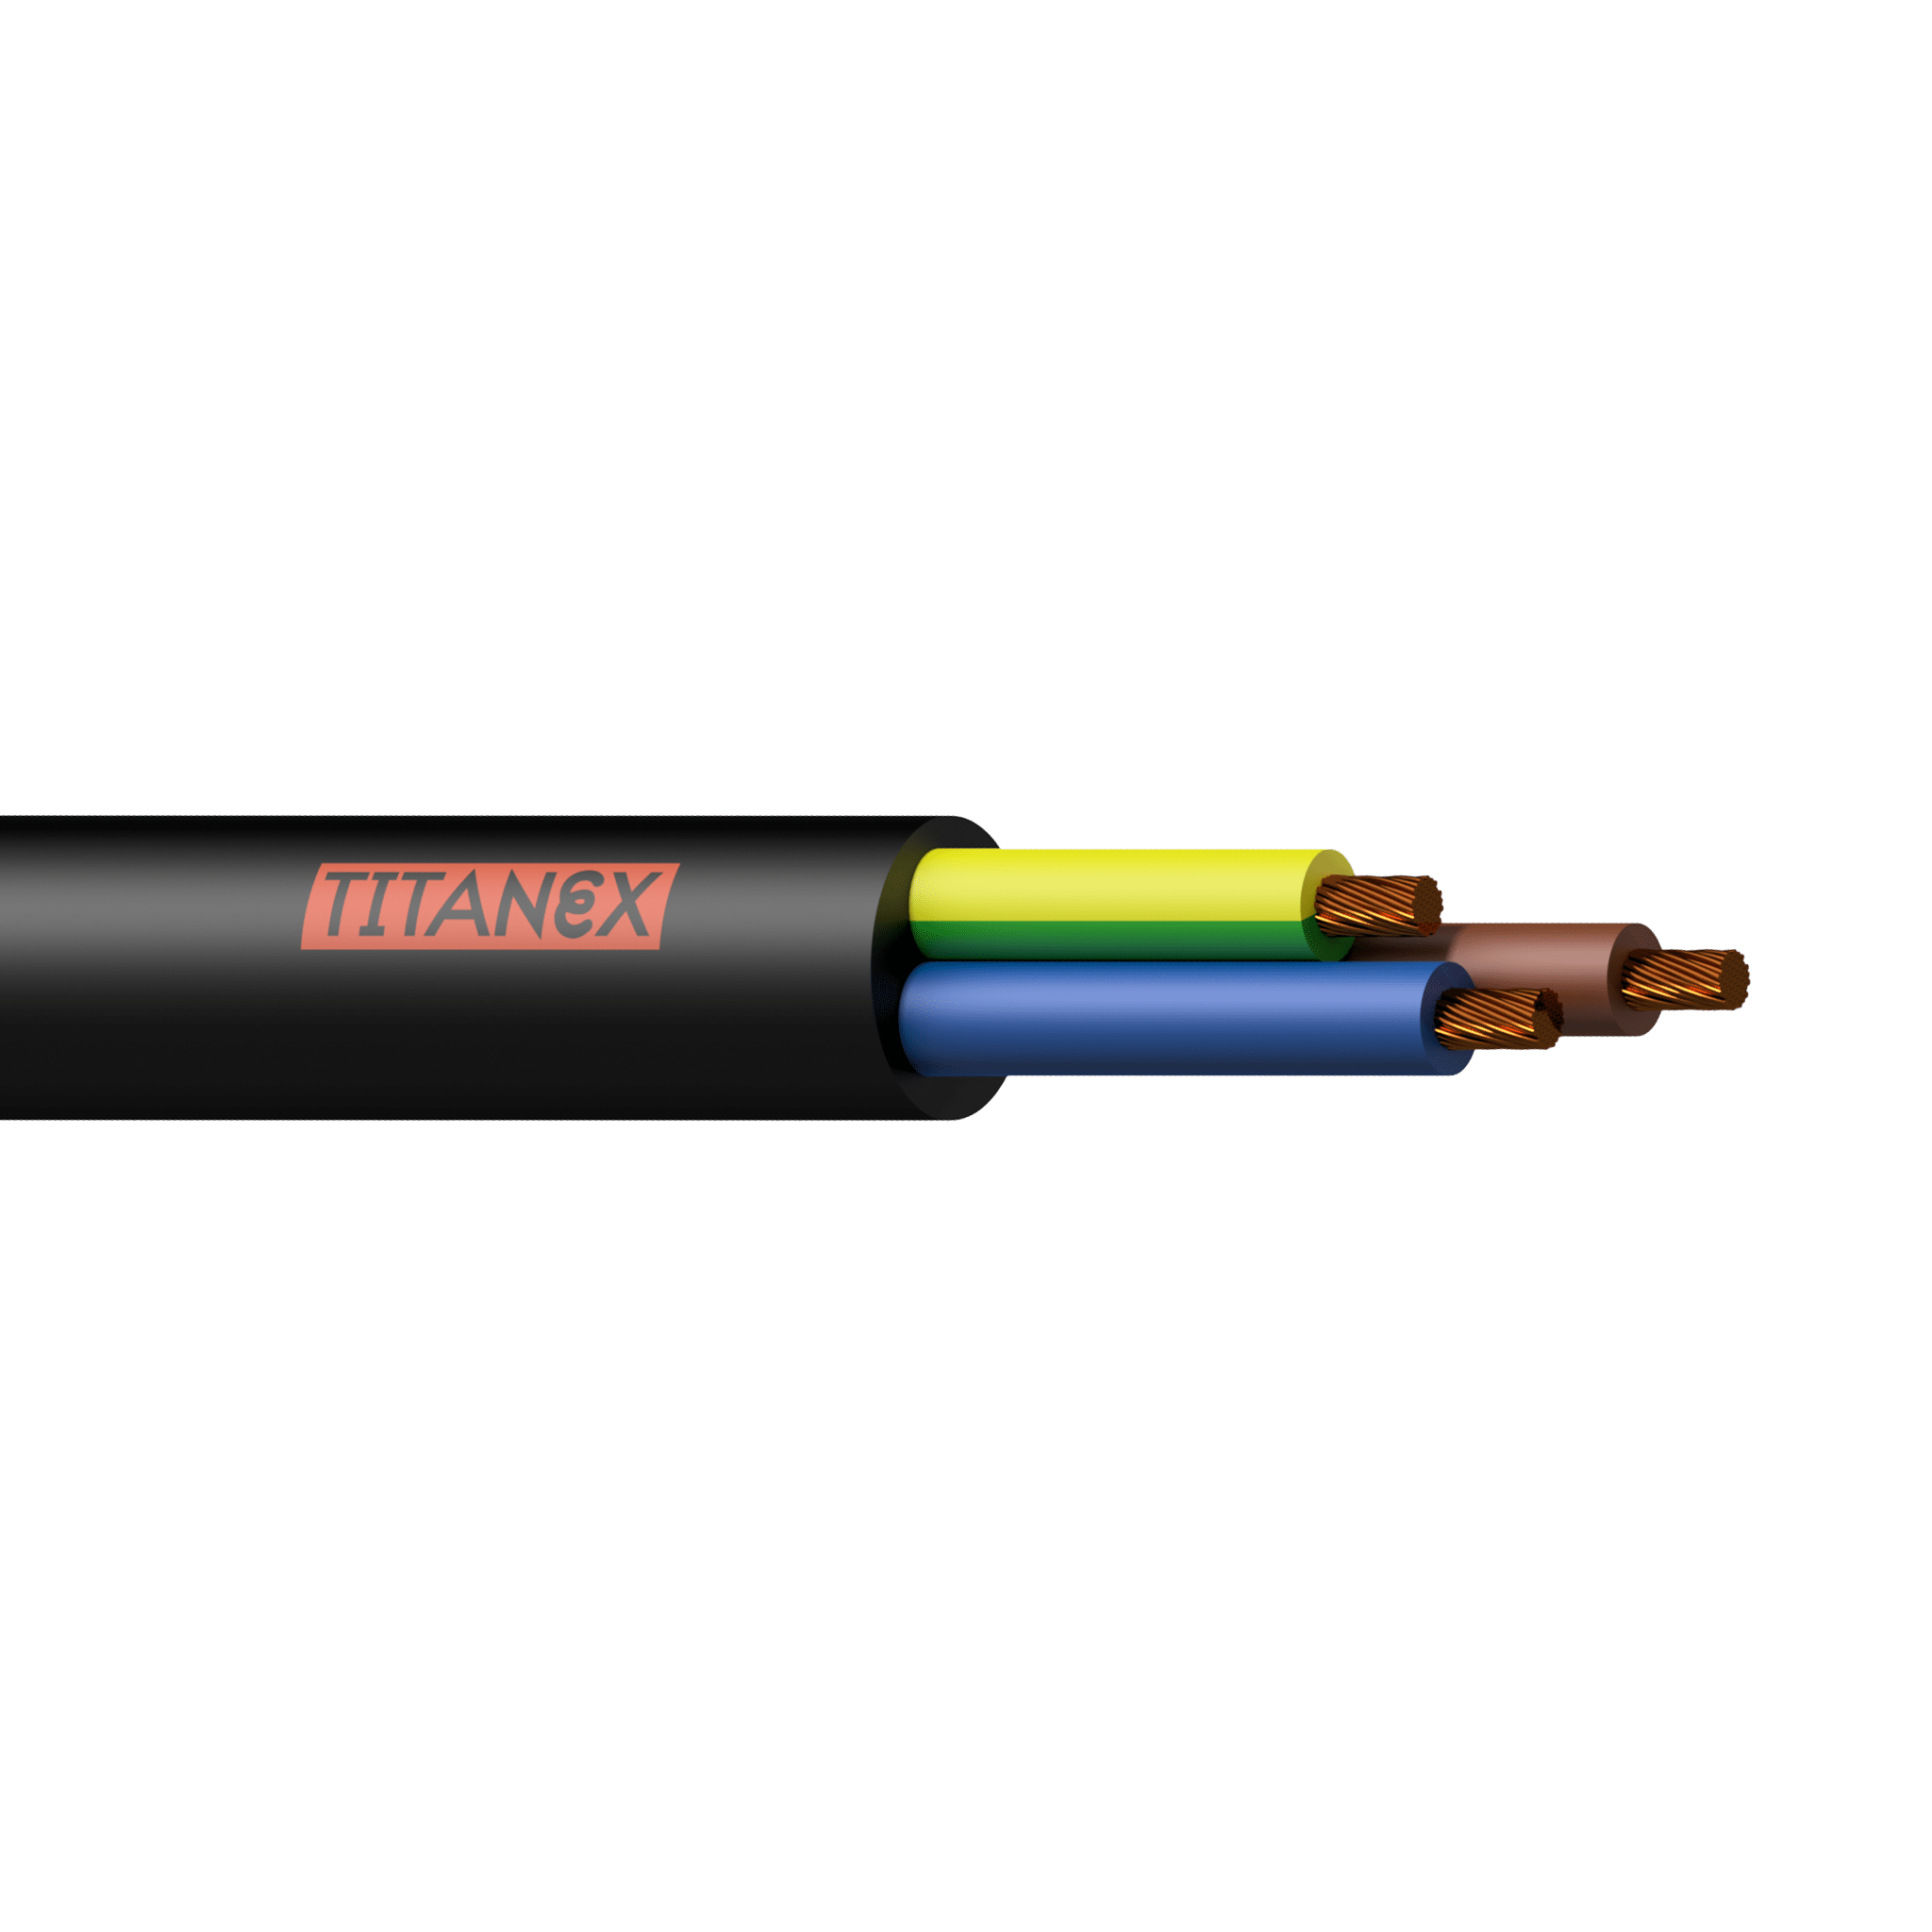 TTX-3G1.5 - Power cable TITANEX - H07RN-F 3G1.5 - 3 x 1.5 mm² - 16 AWG